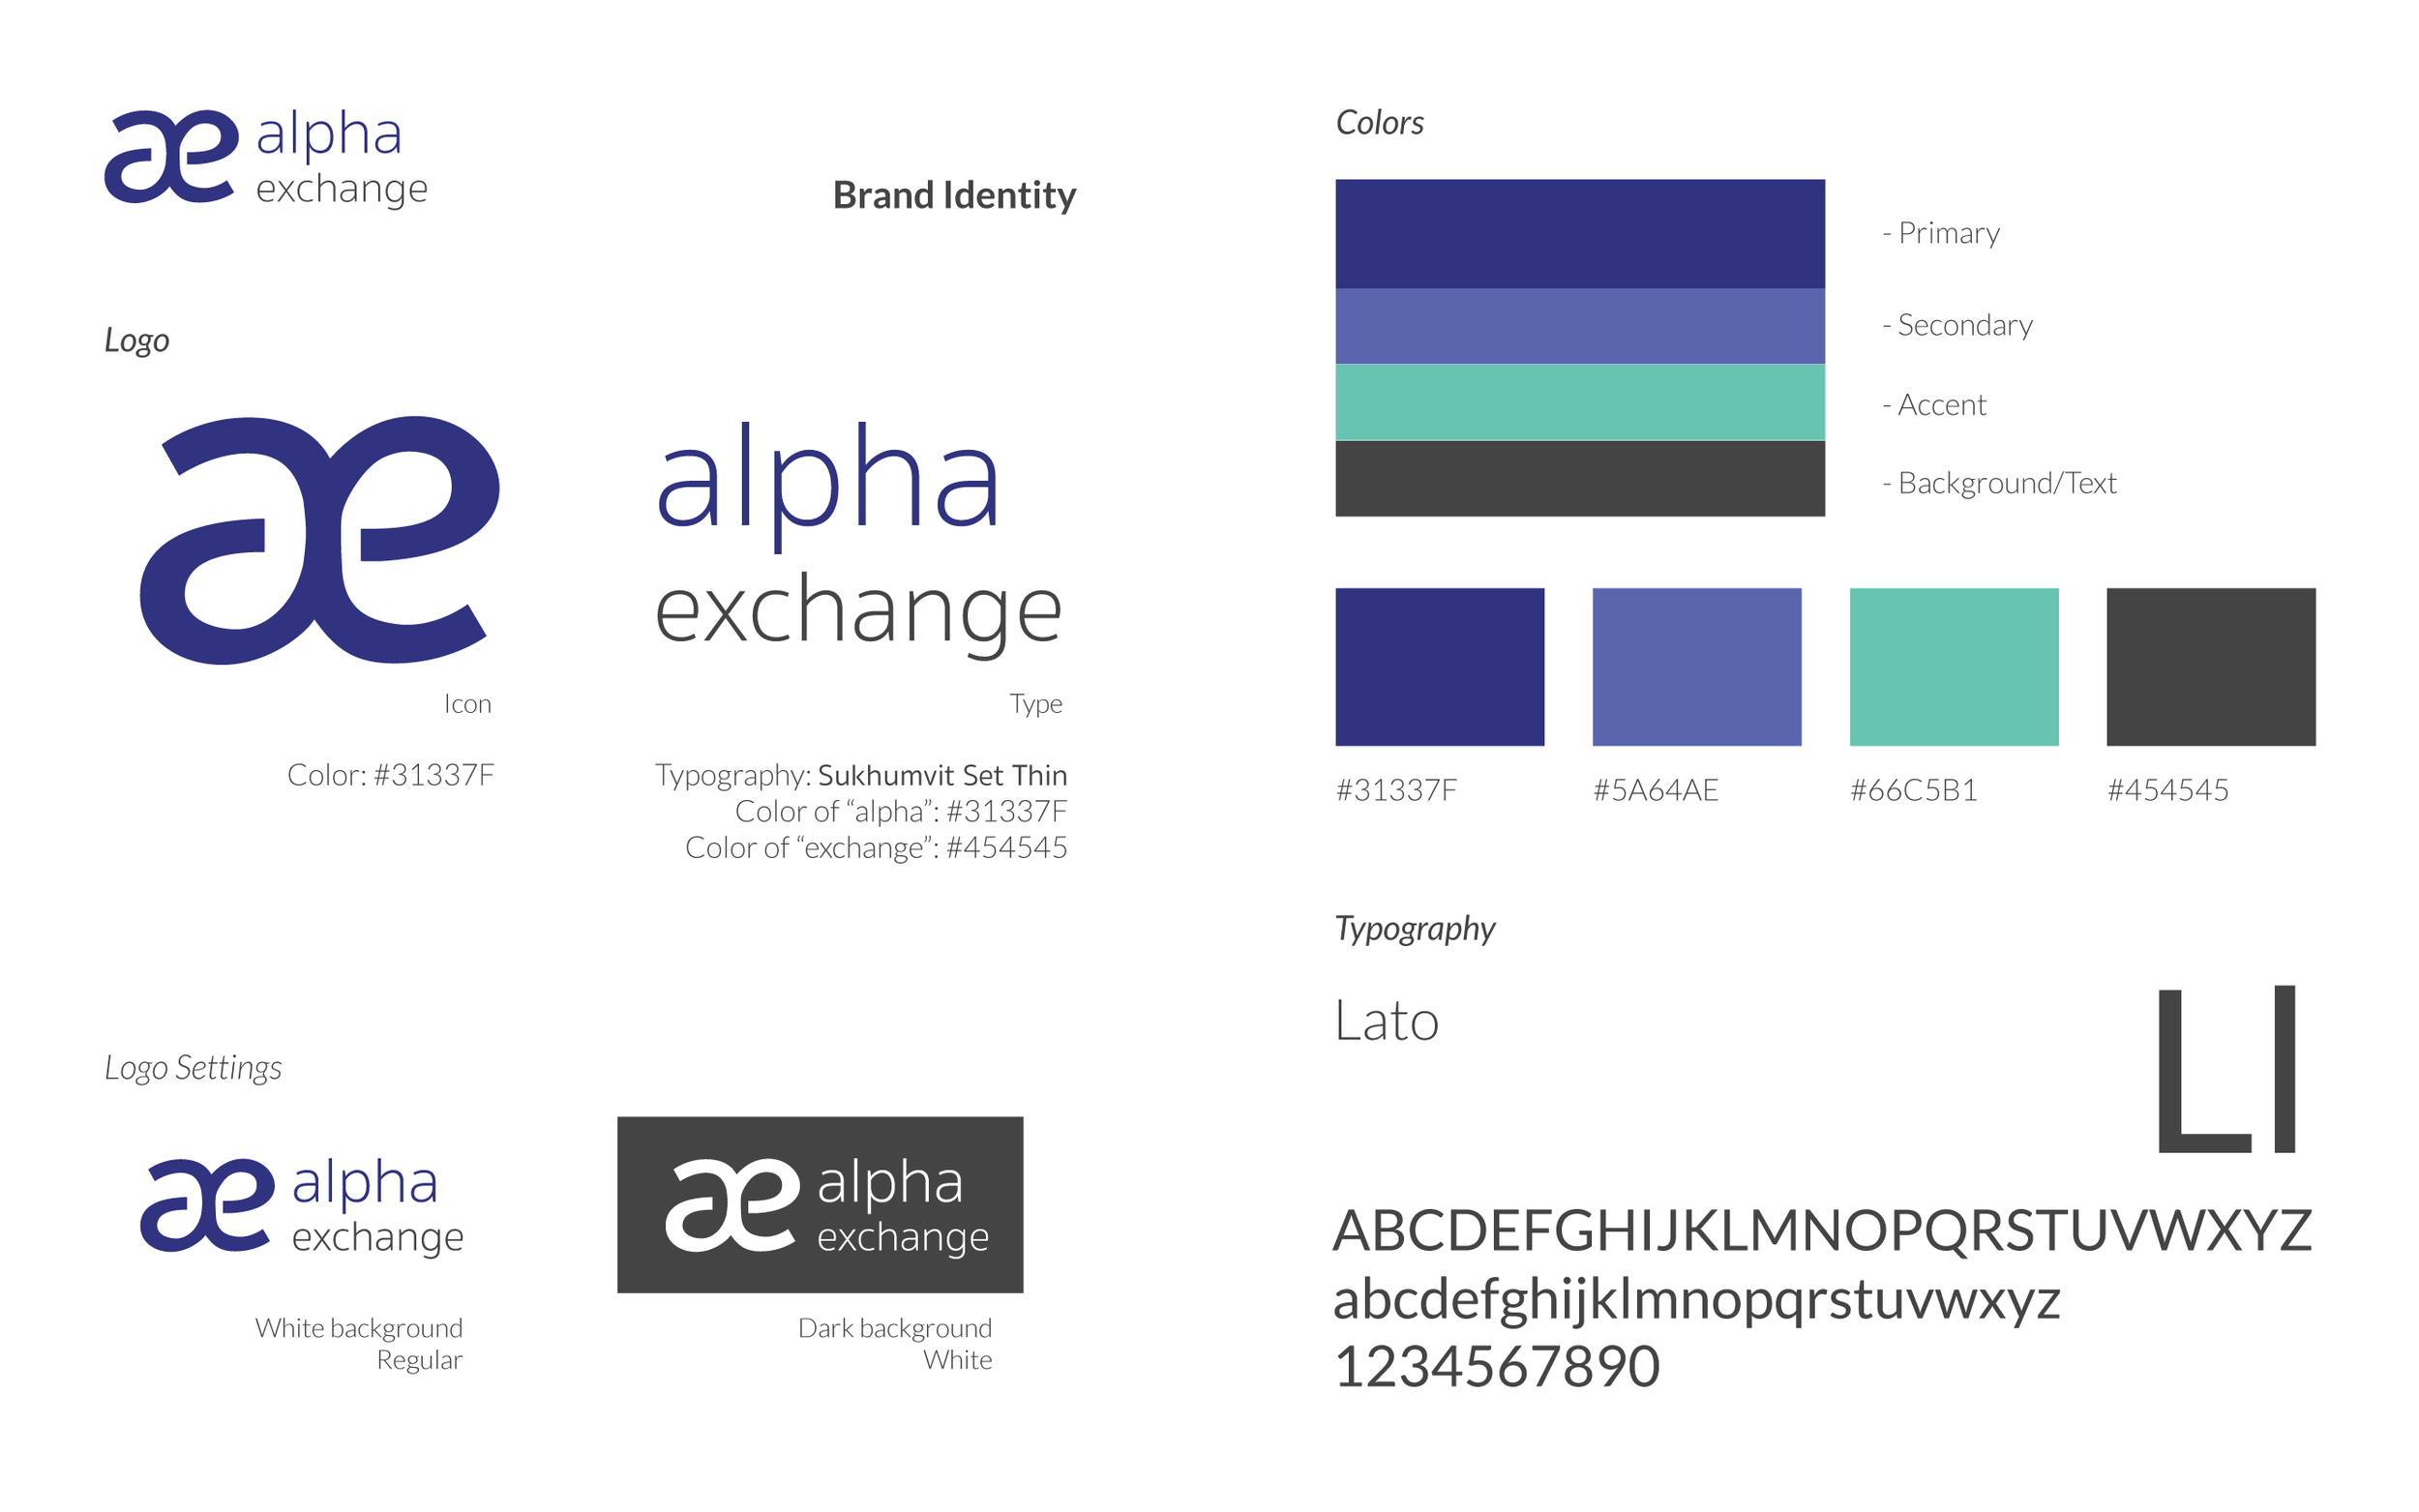 Alpha Exchange's refreshed visual brand style guide